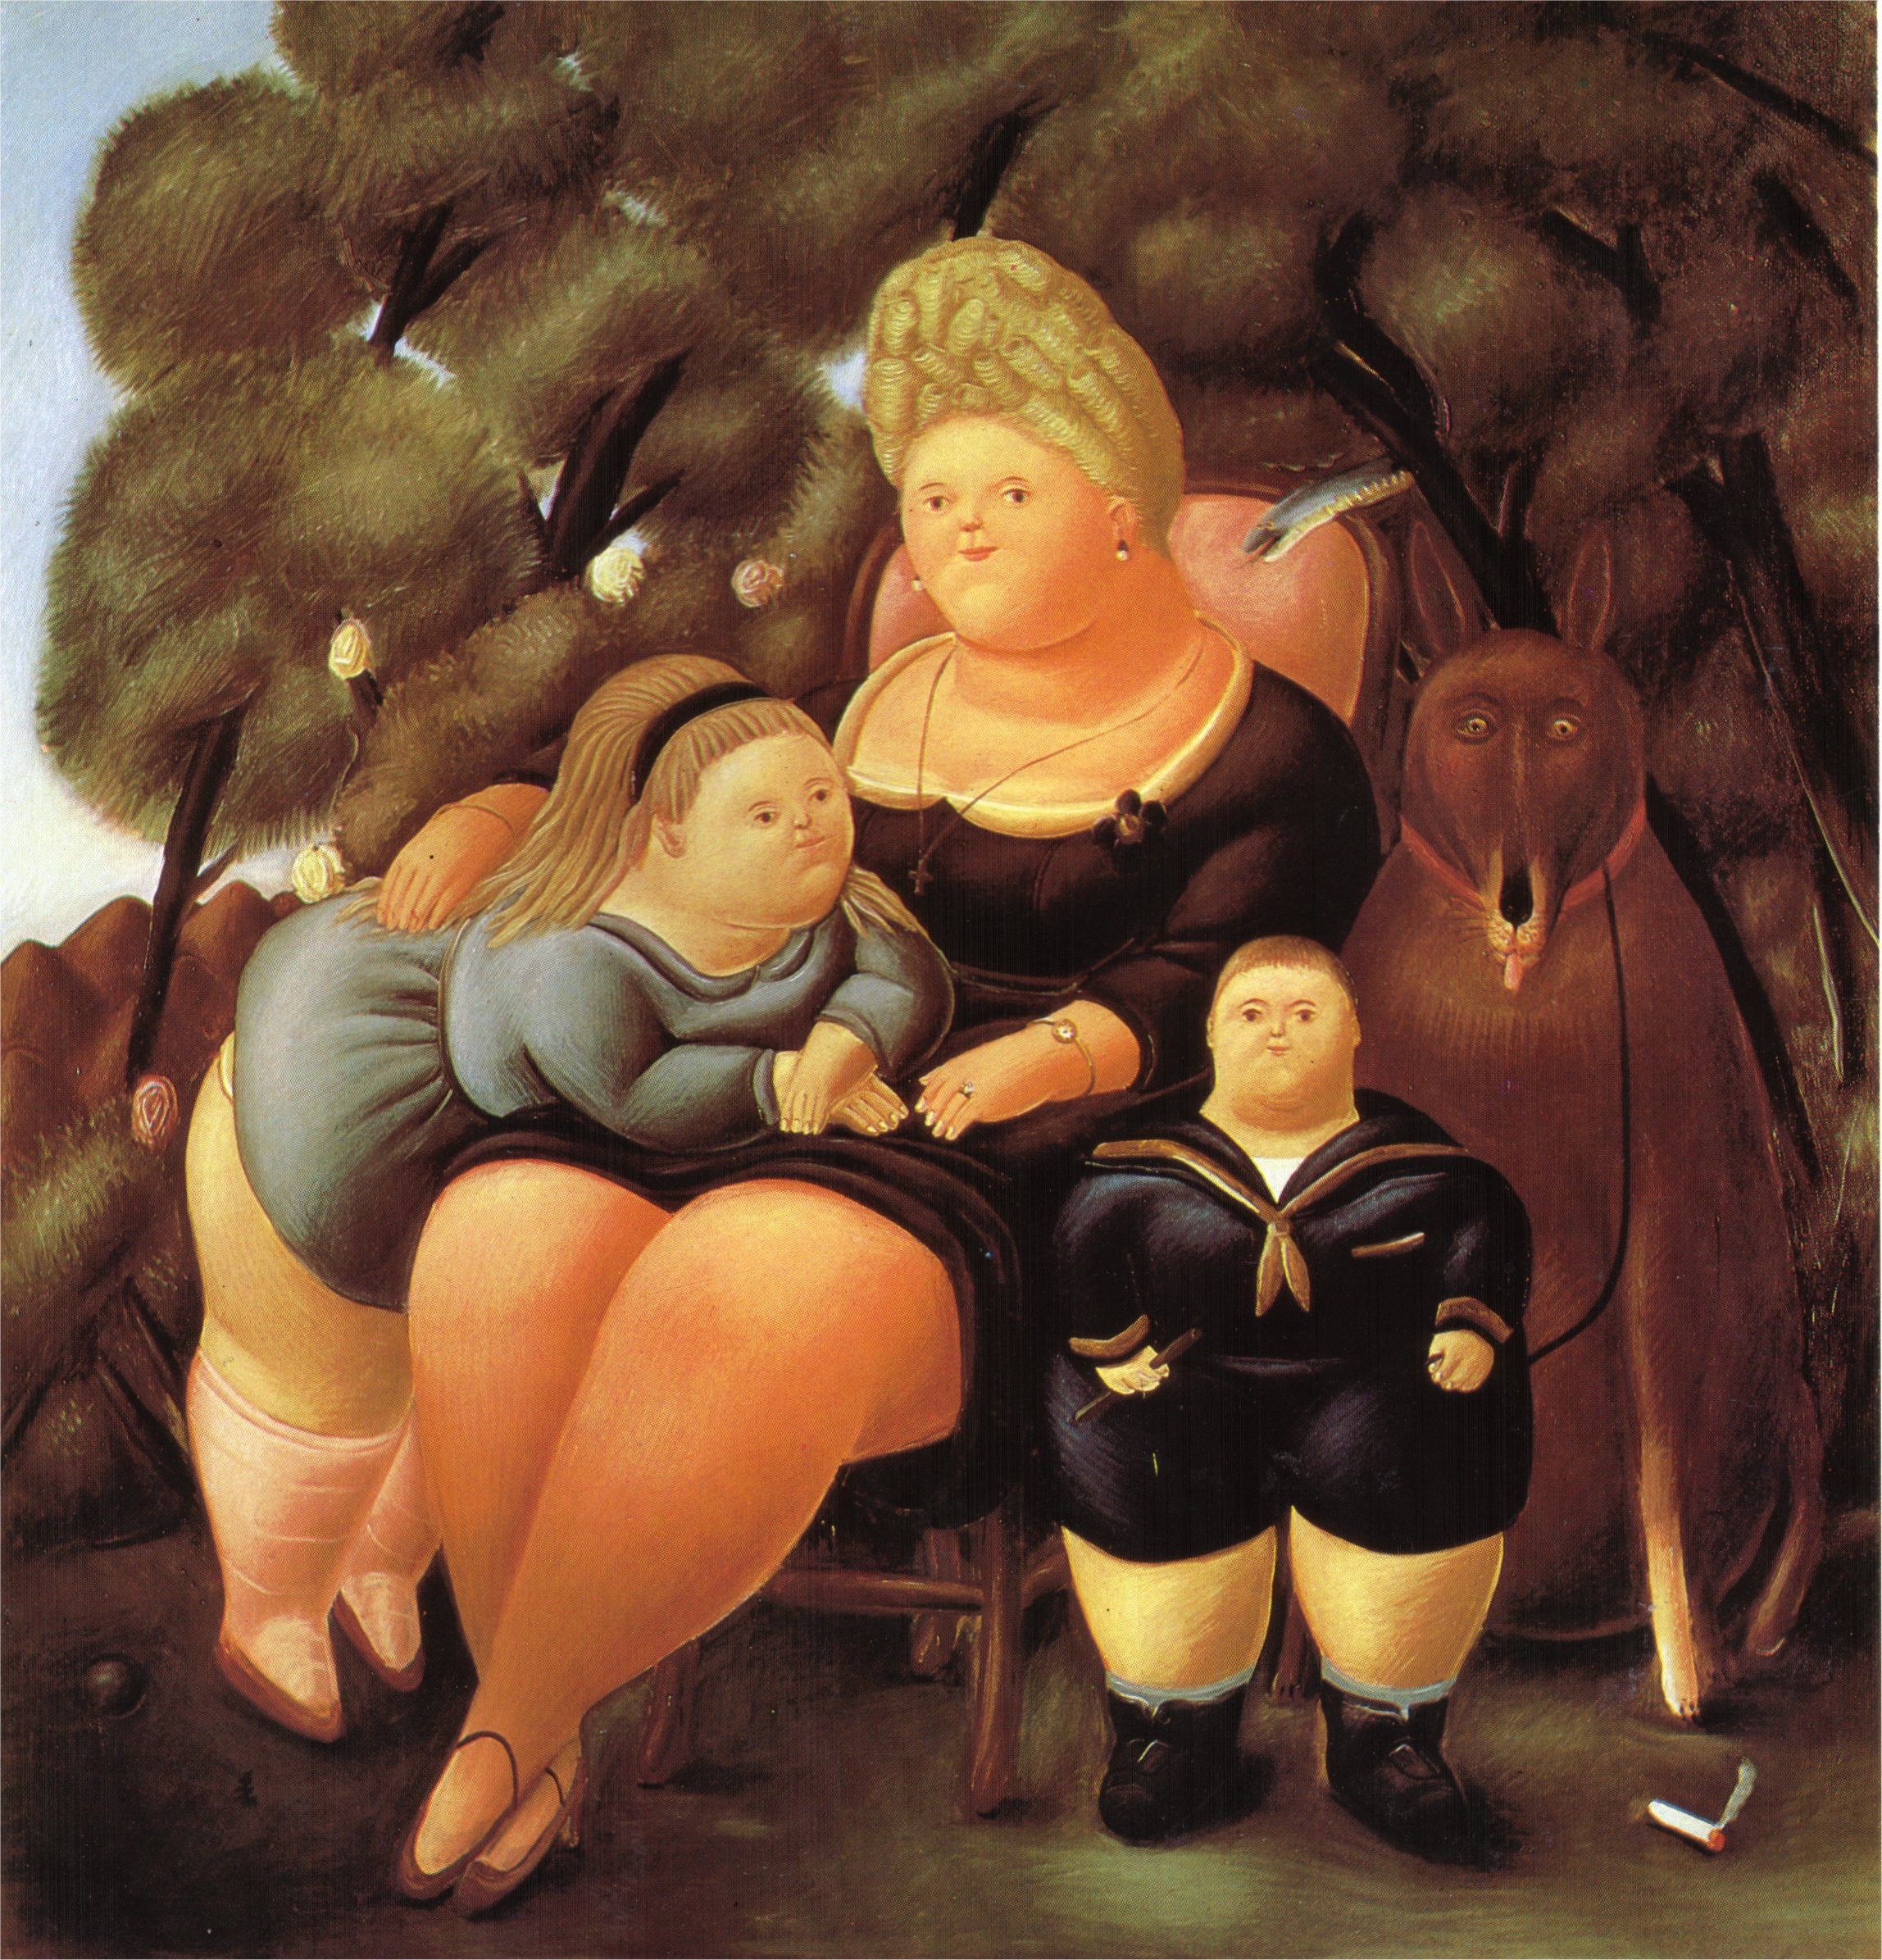 Populaire The Family, 1966 - Fernando Botero - WikiArt.org GU85